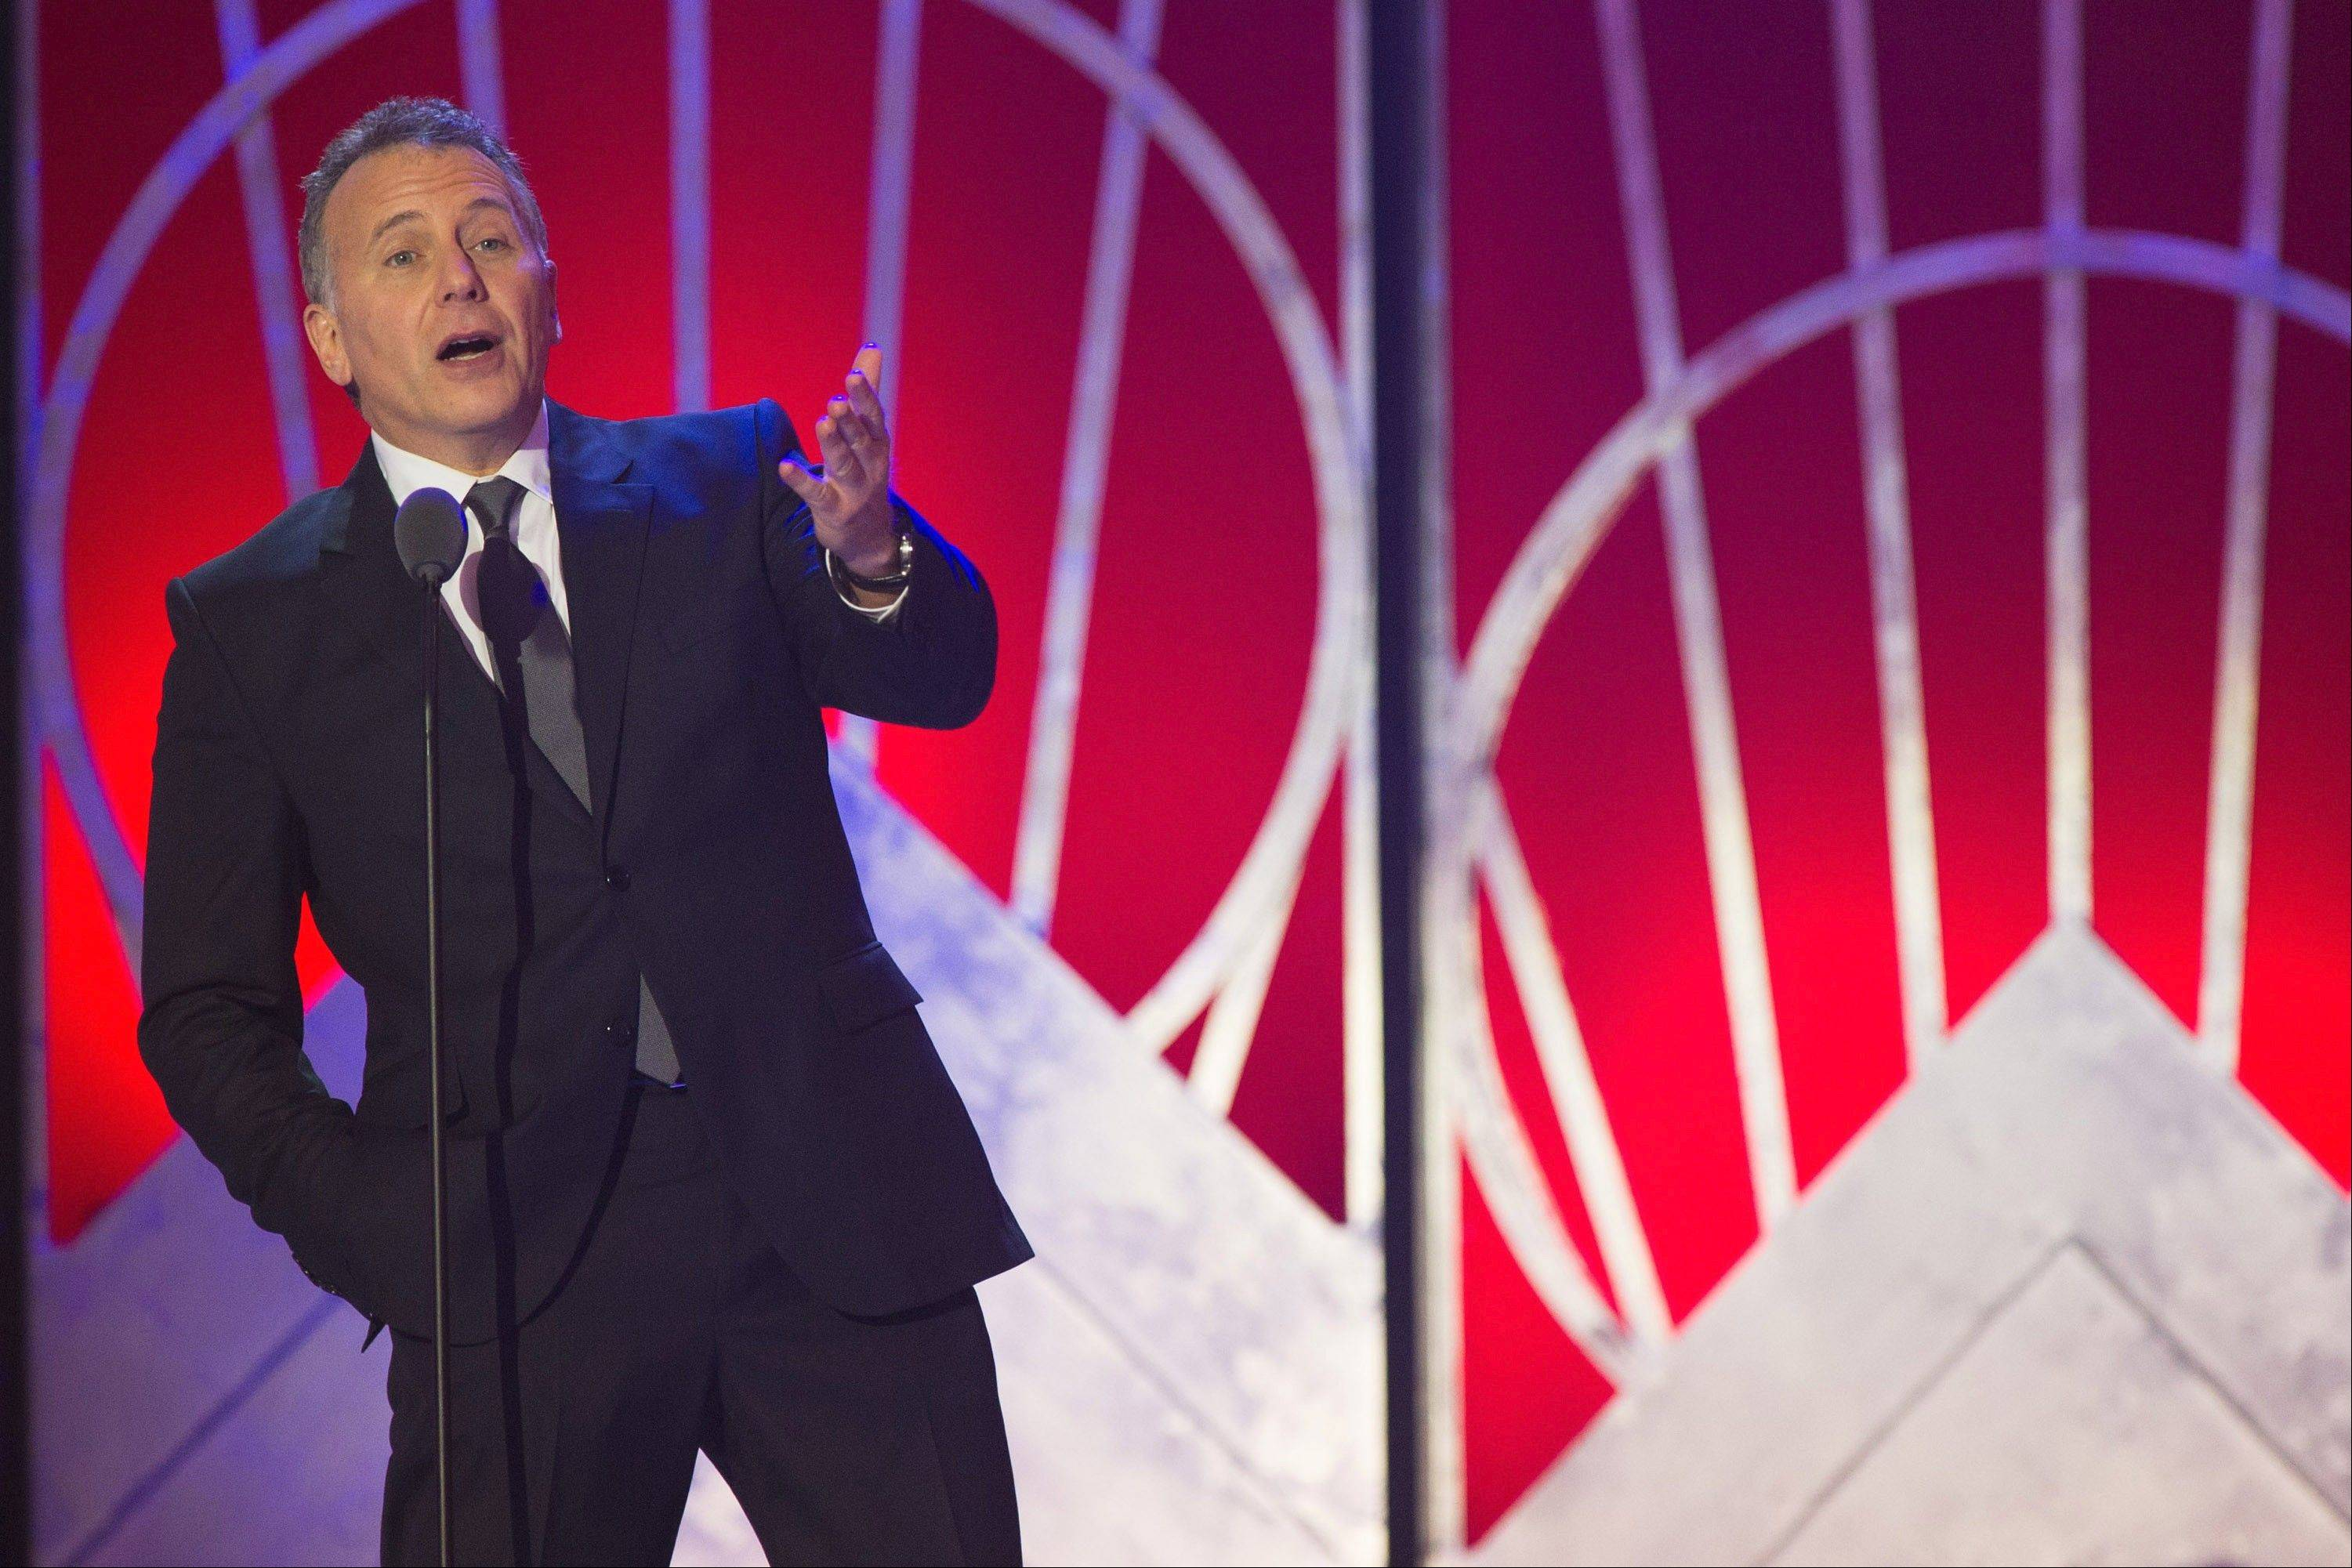 Comedian Paul Reiser returns this weekend to Zanies Comedy Club in Rosemont.